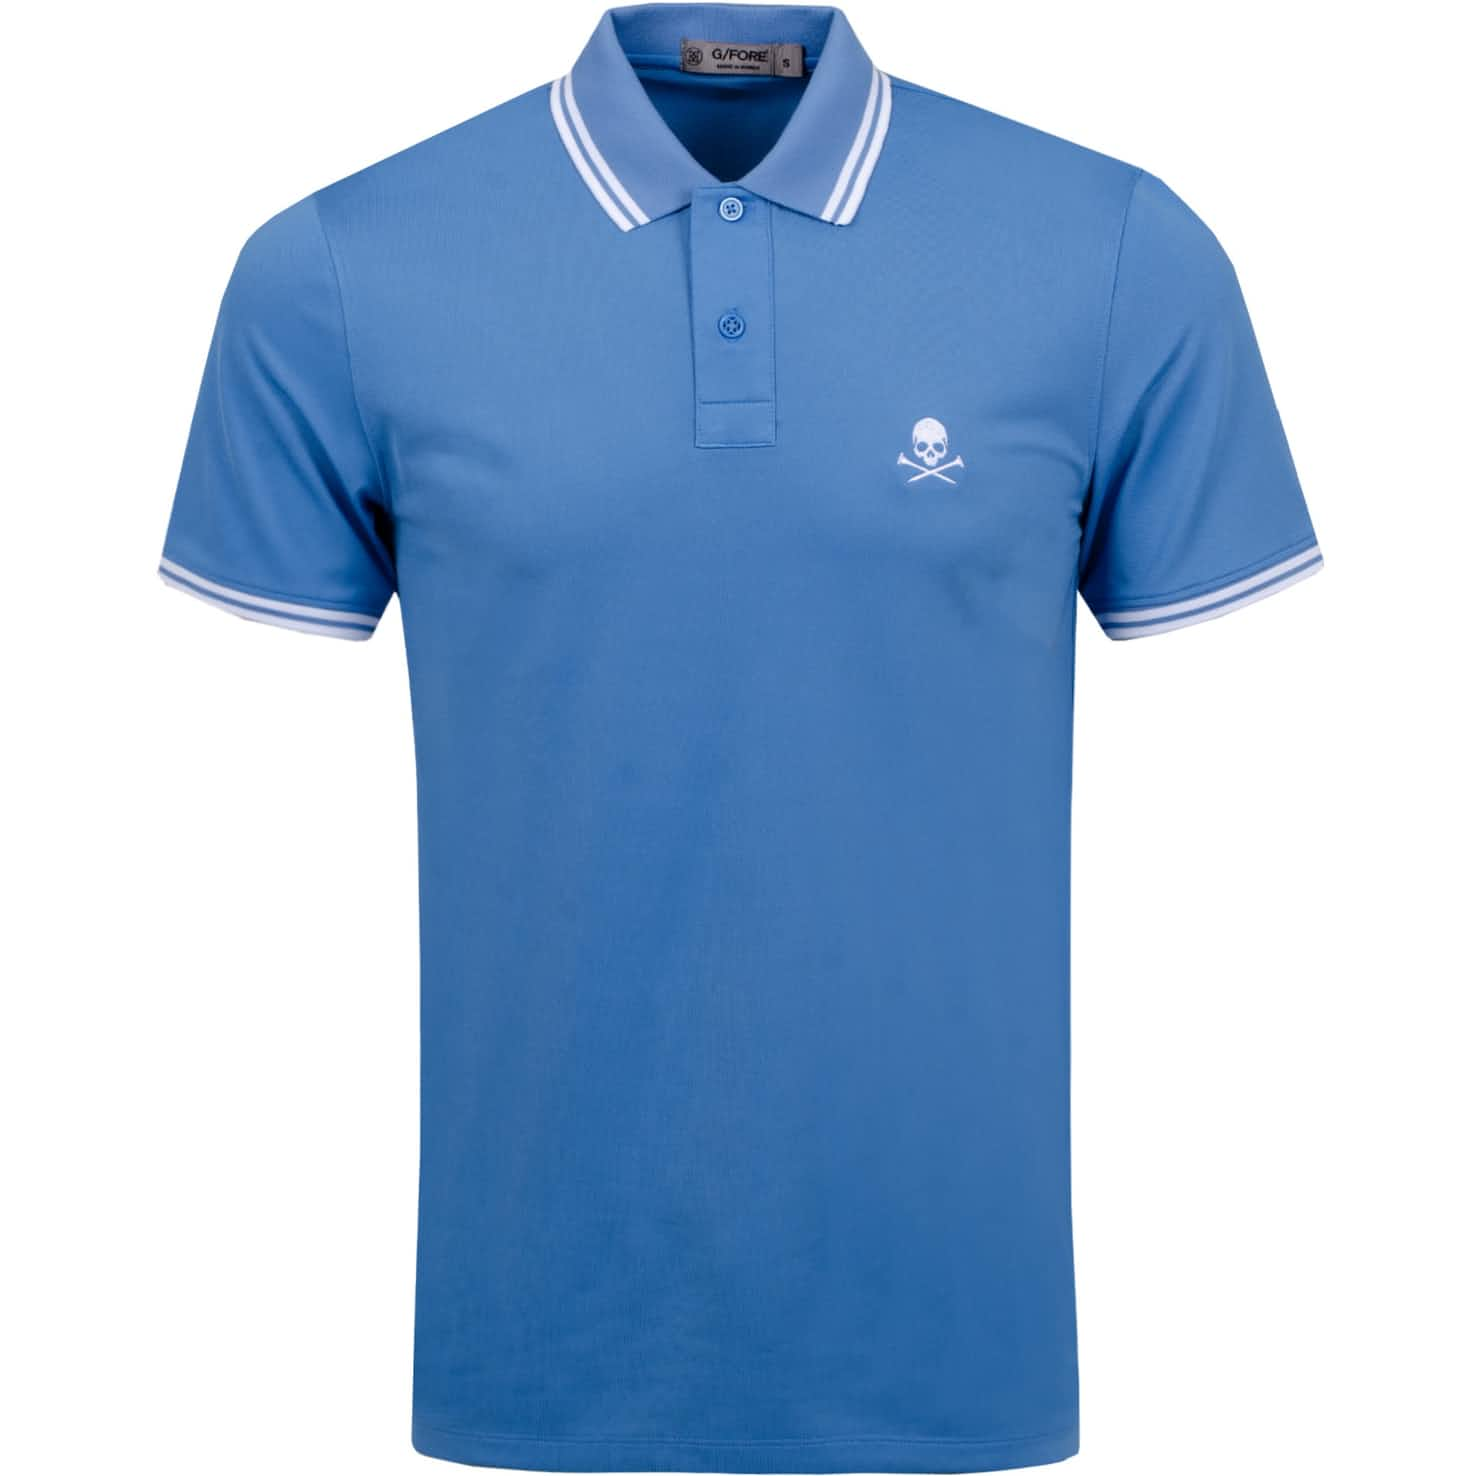 x TRENDYGOLF Skull Tipped Polo Pacific Coast/Snow - SS20